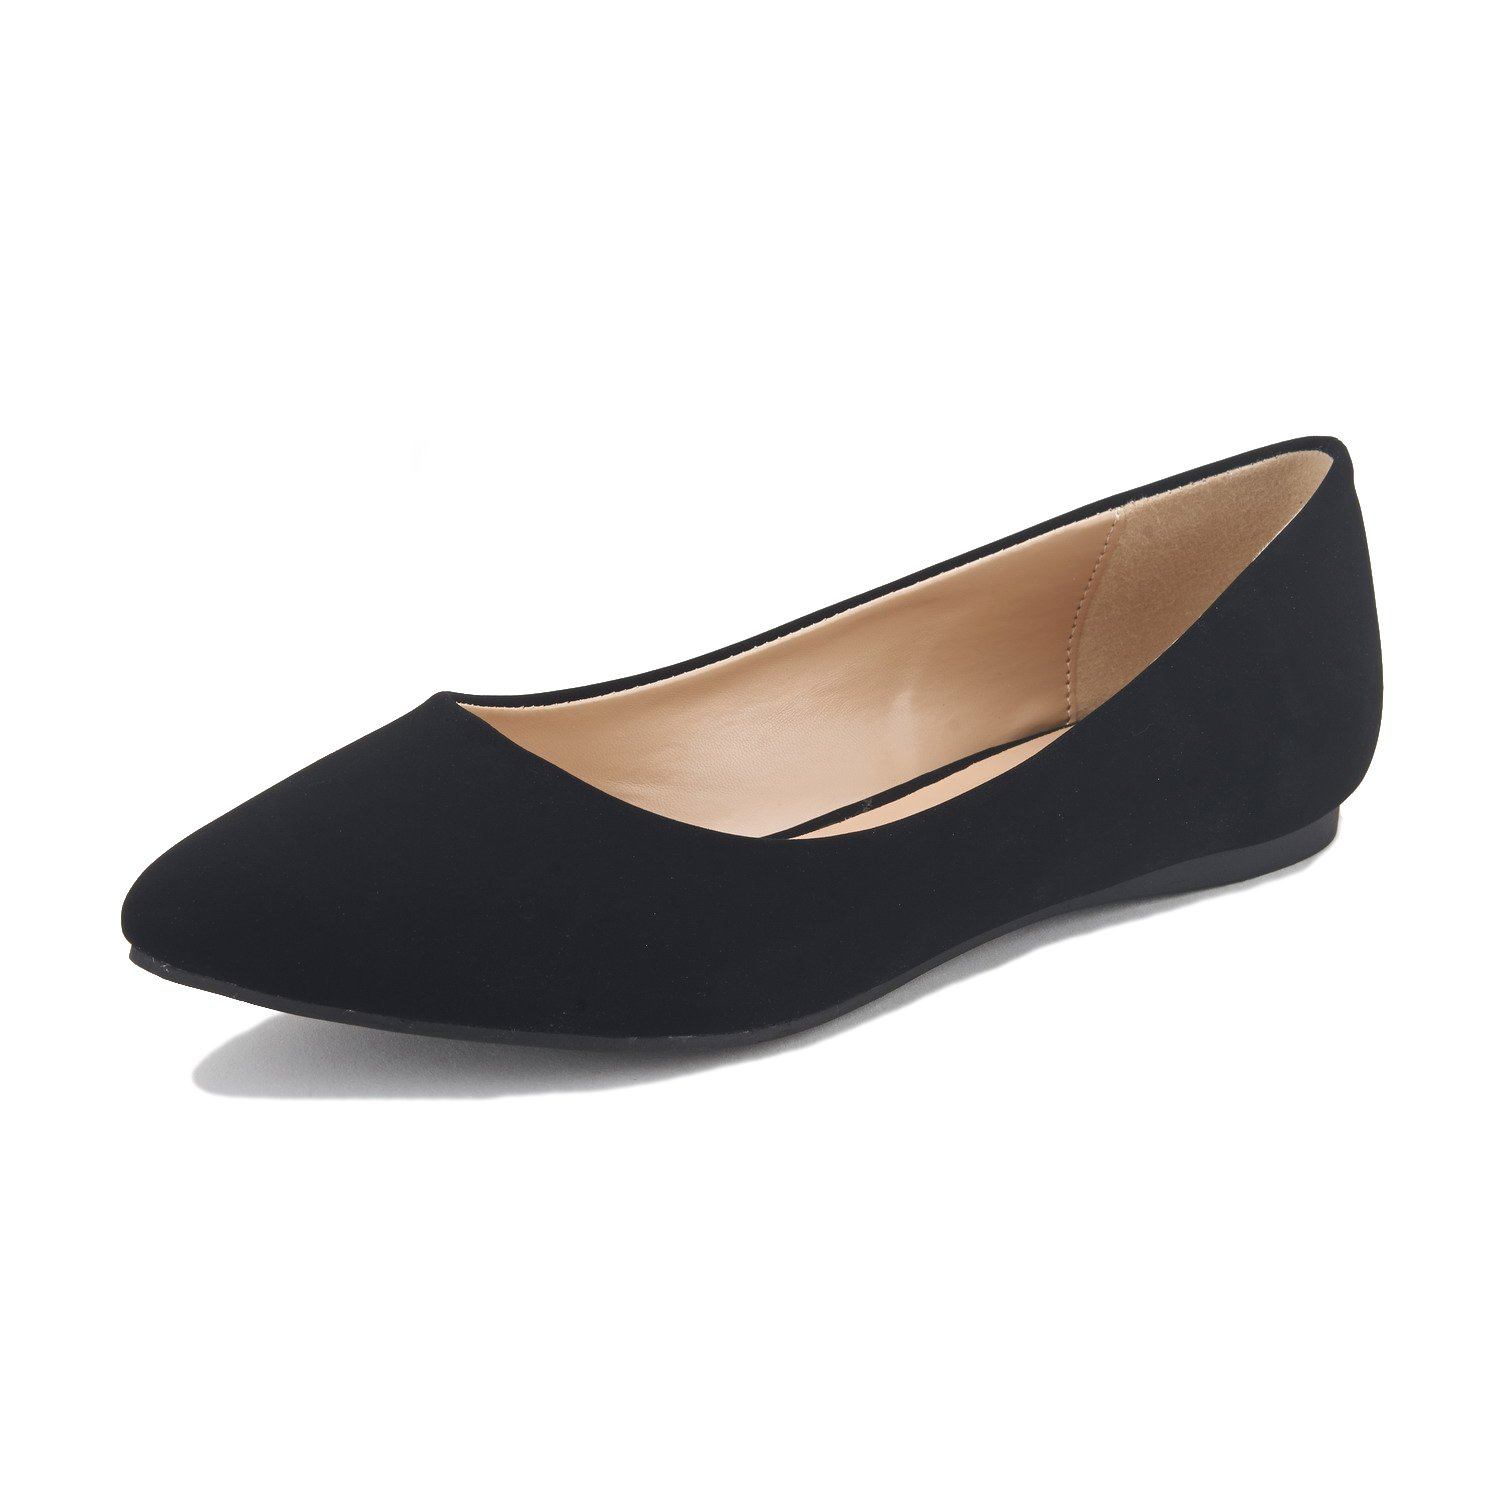 DREAM PAIRS Sole Classic Women's Casual Pointed Toe Ballet Comfort Soft Slip On Flats Shoes Black Nubuck Size 11